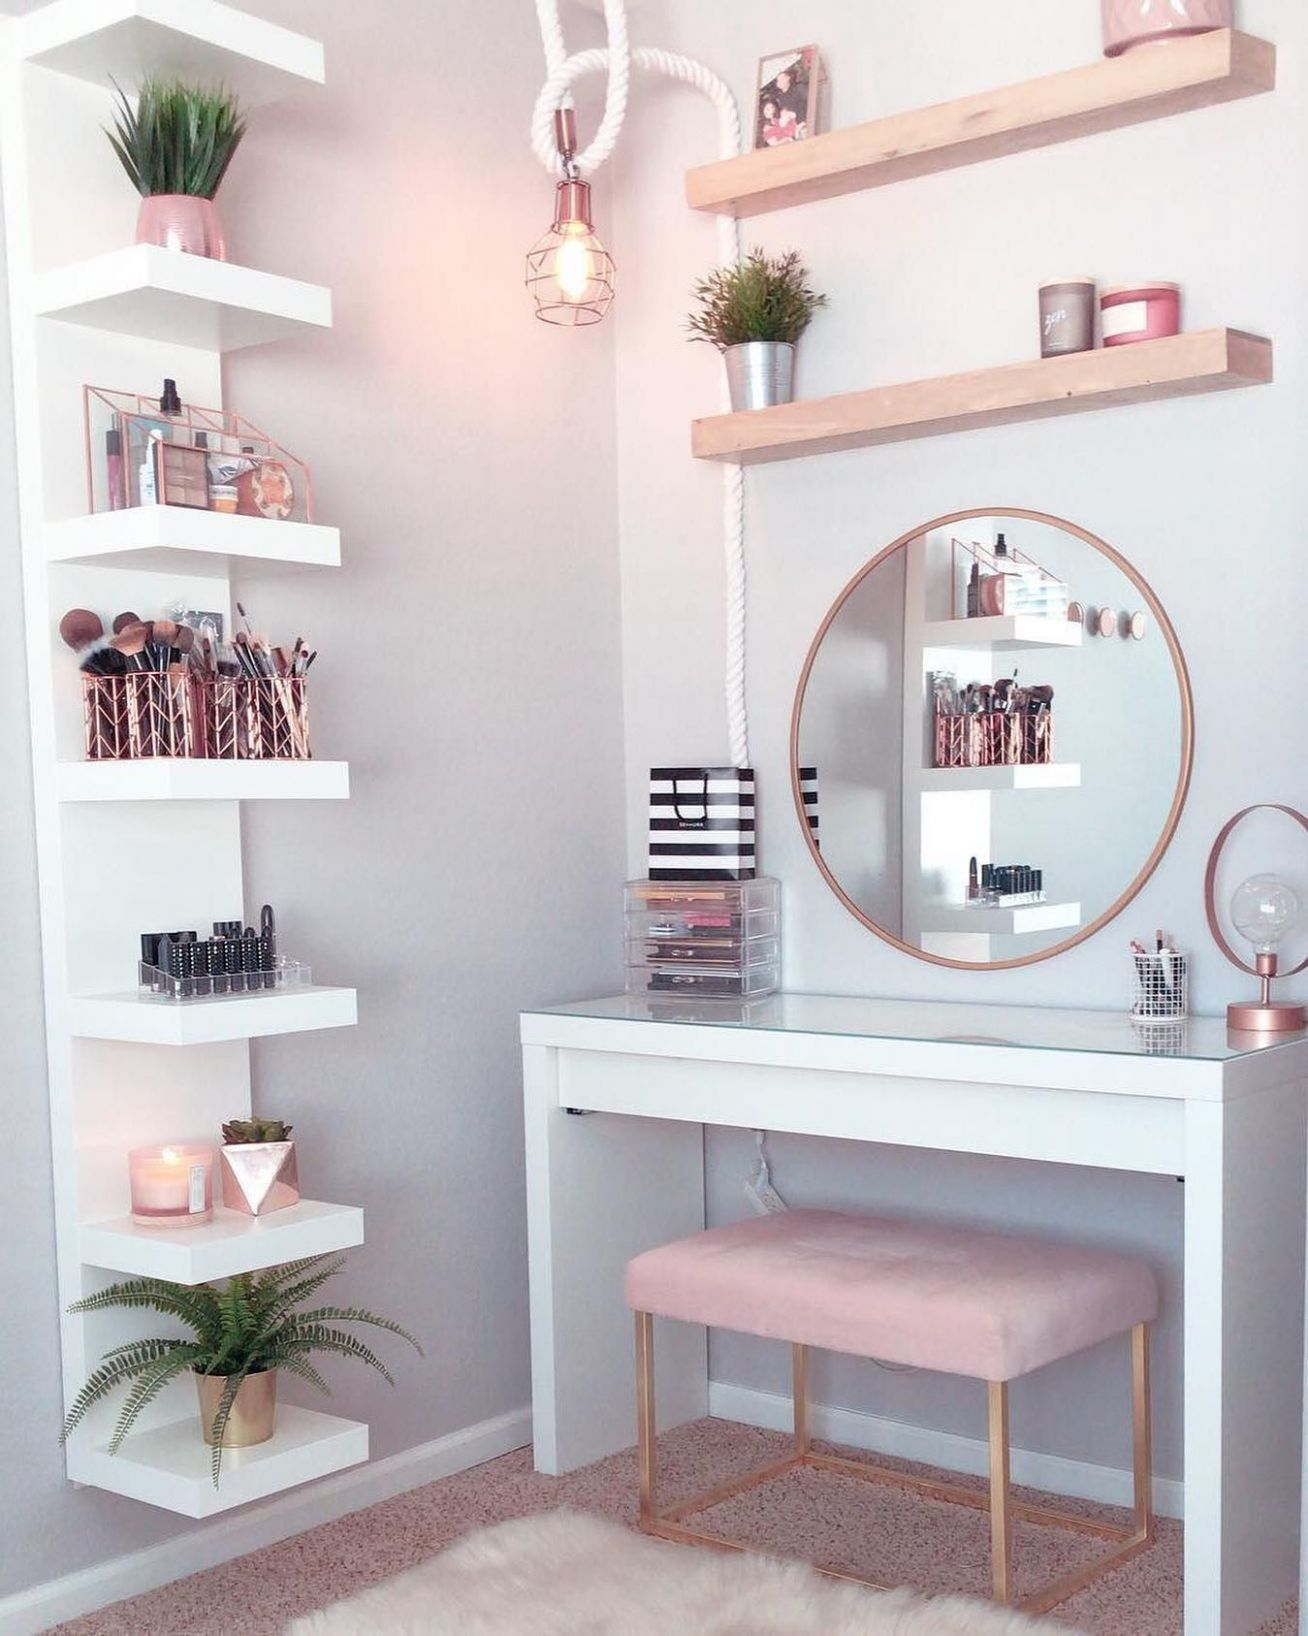 Dressing table ideas: How to organise your dressing table - makeup room organiser